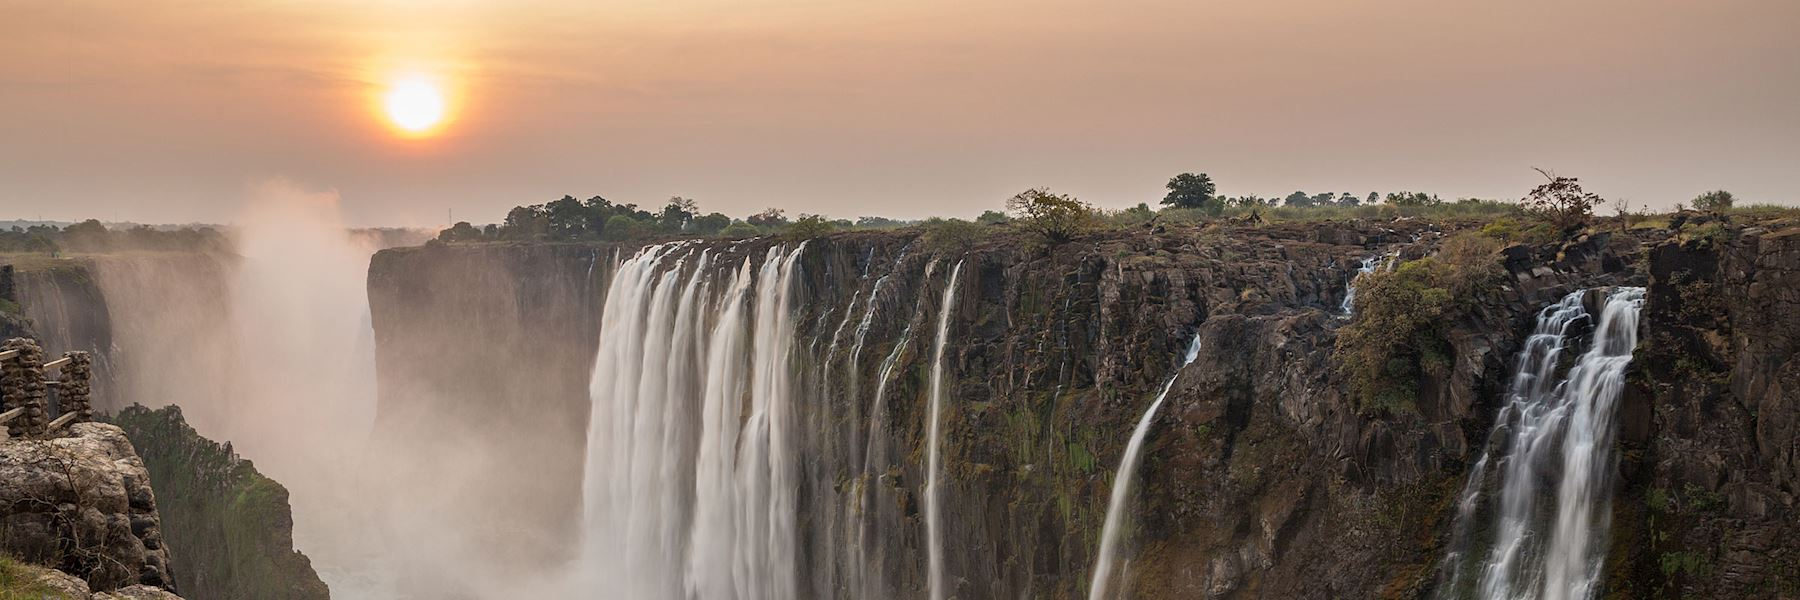 Zambia travel guides